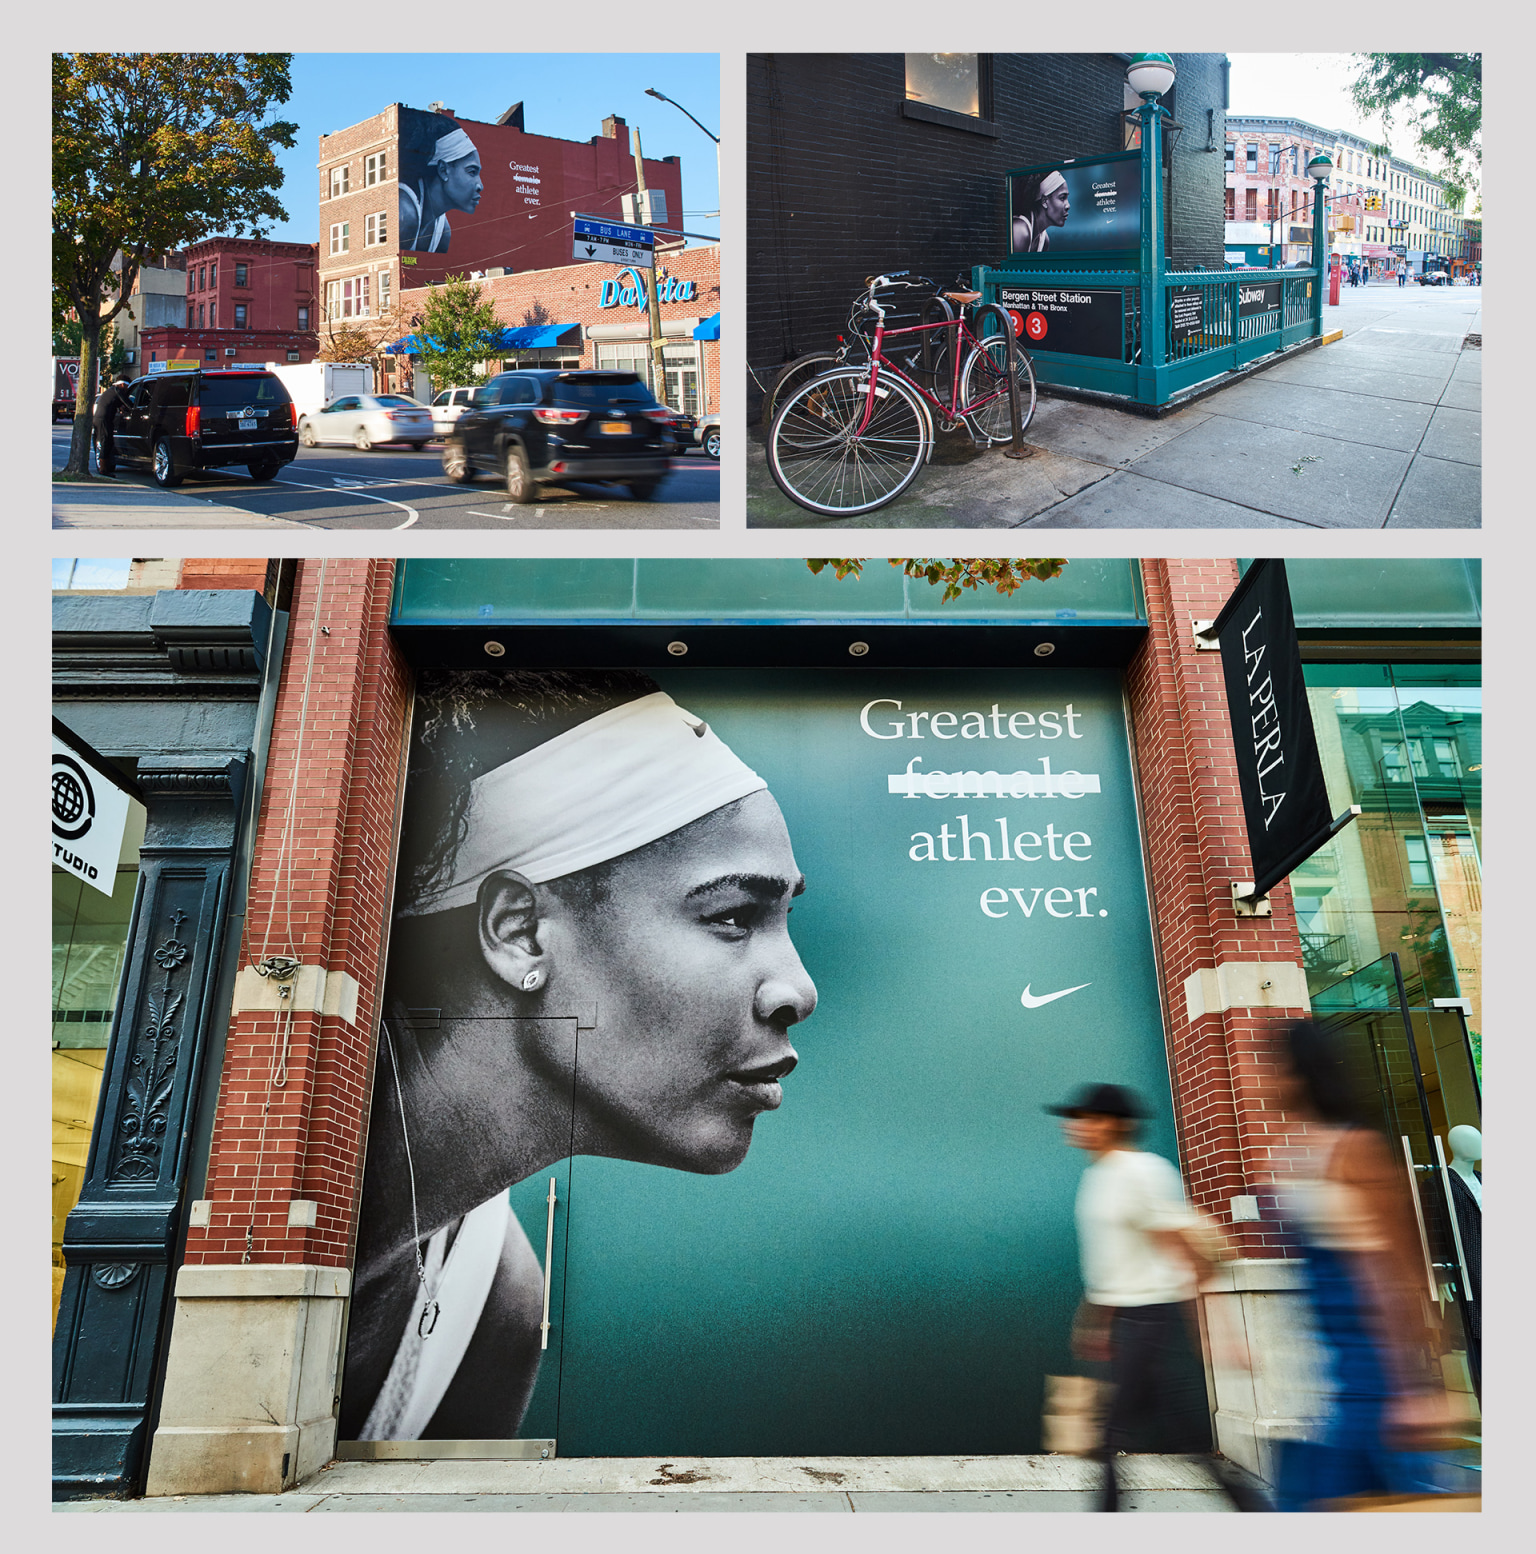 Nike Unlimited Greatness - Serena Williams campaign